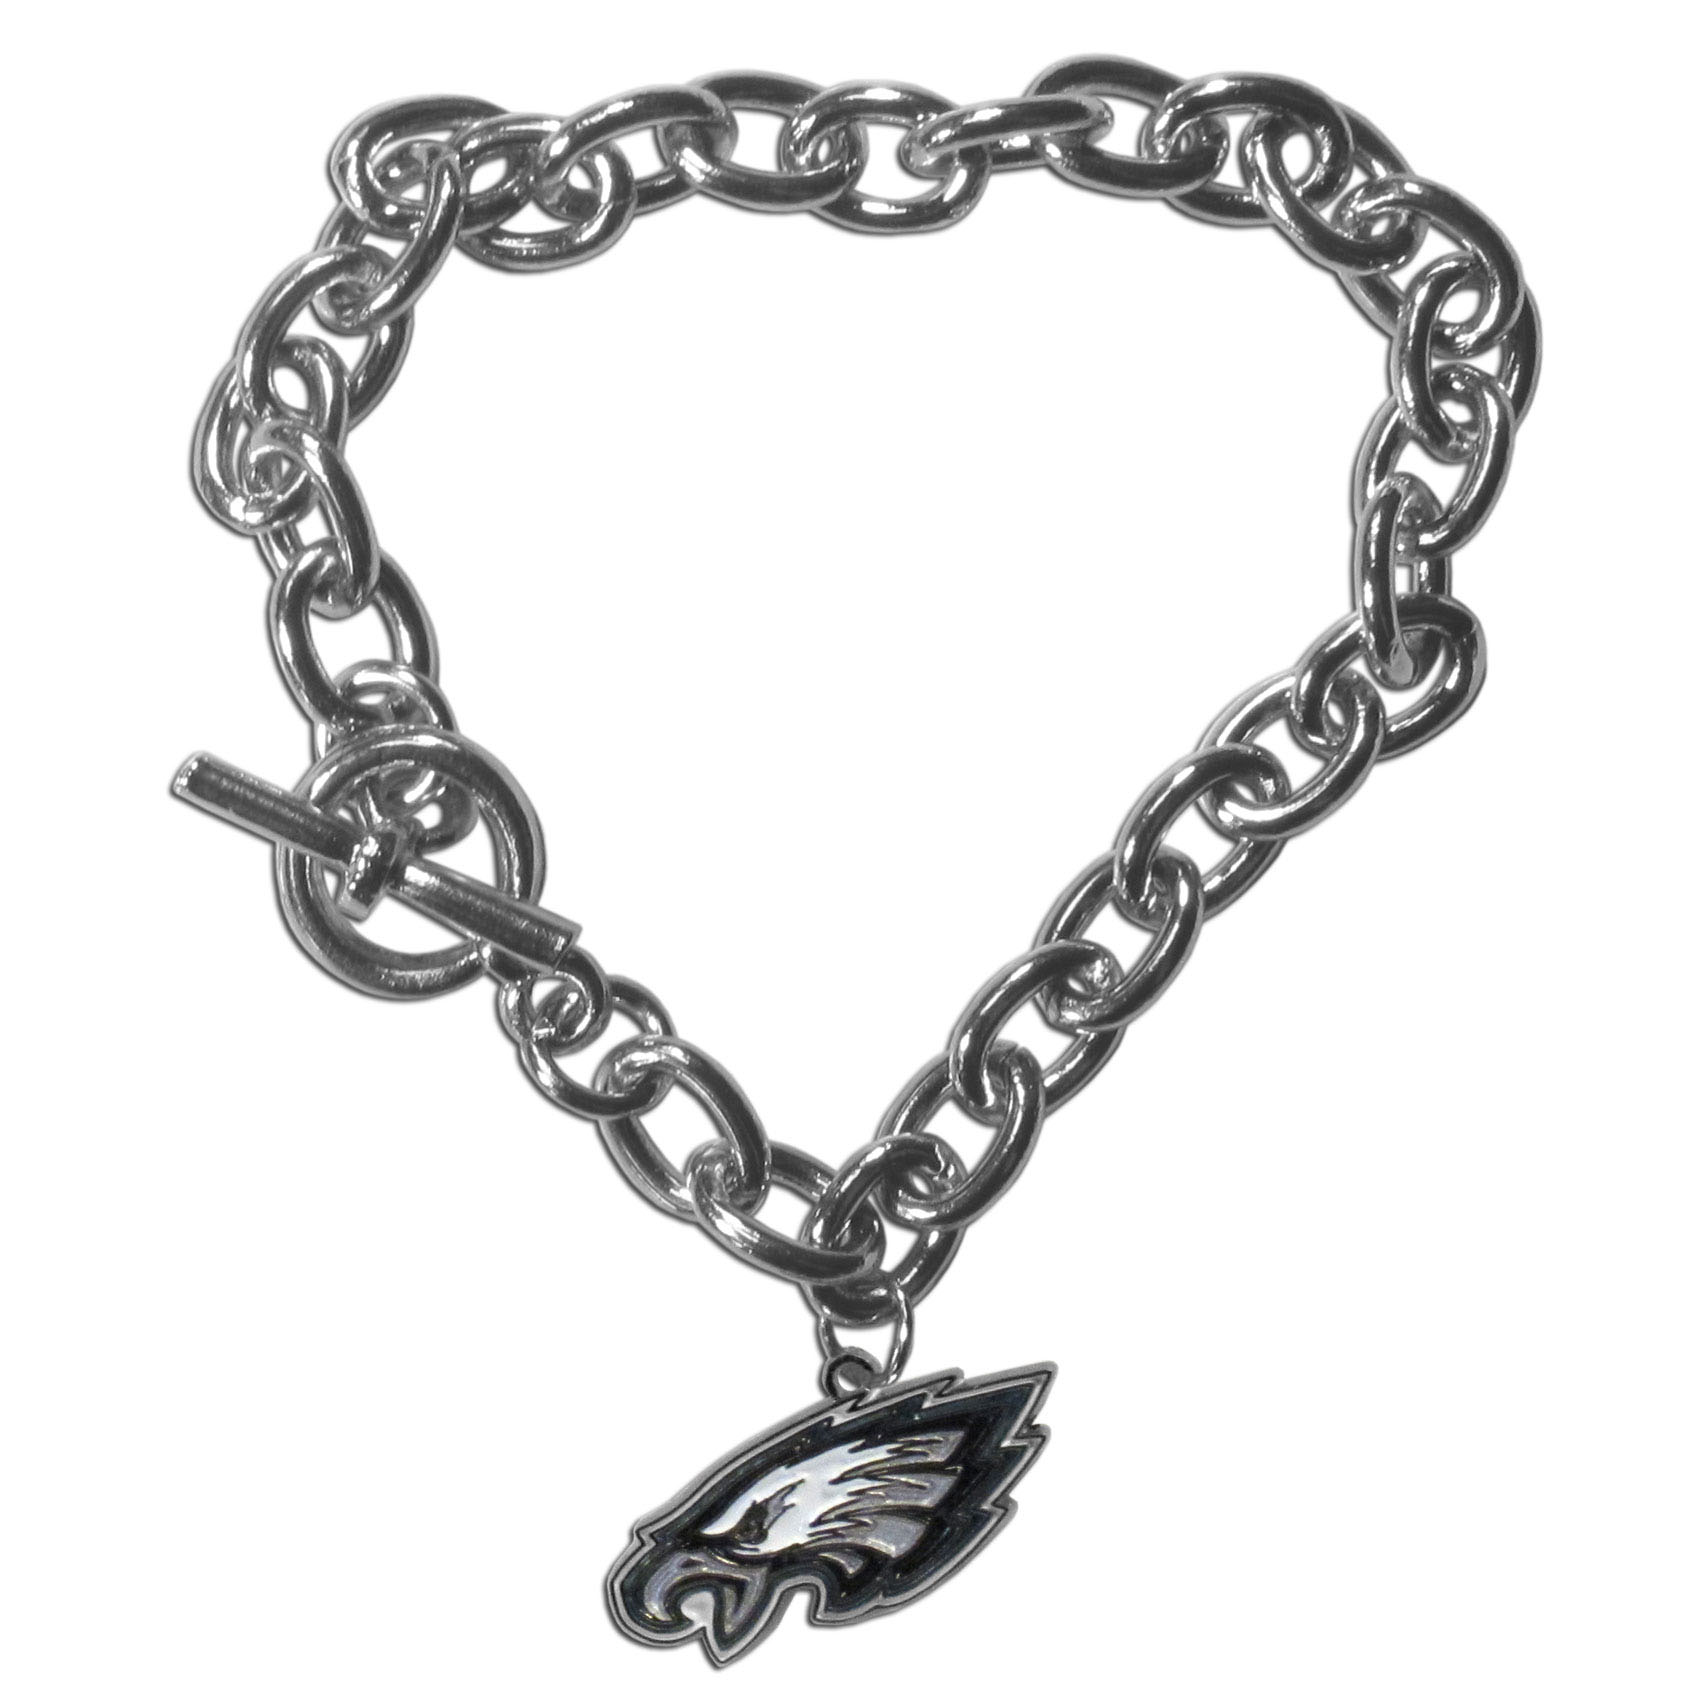 Philadelphia Eagles Charm Chain Bracelet - Our classic single charm bracelet is a great way to show off your team pride! The 7.5 inch large link chain features a high polish Philadelphia Eagles charm and features a toggle clasp which makes it super easy to take on and off.